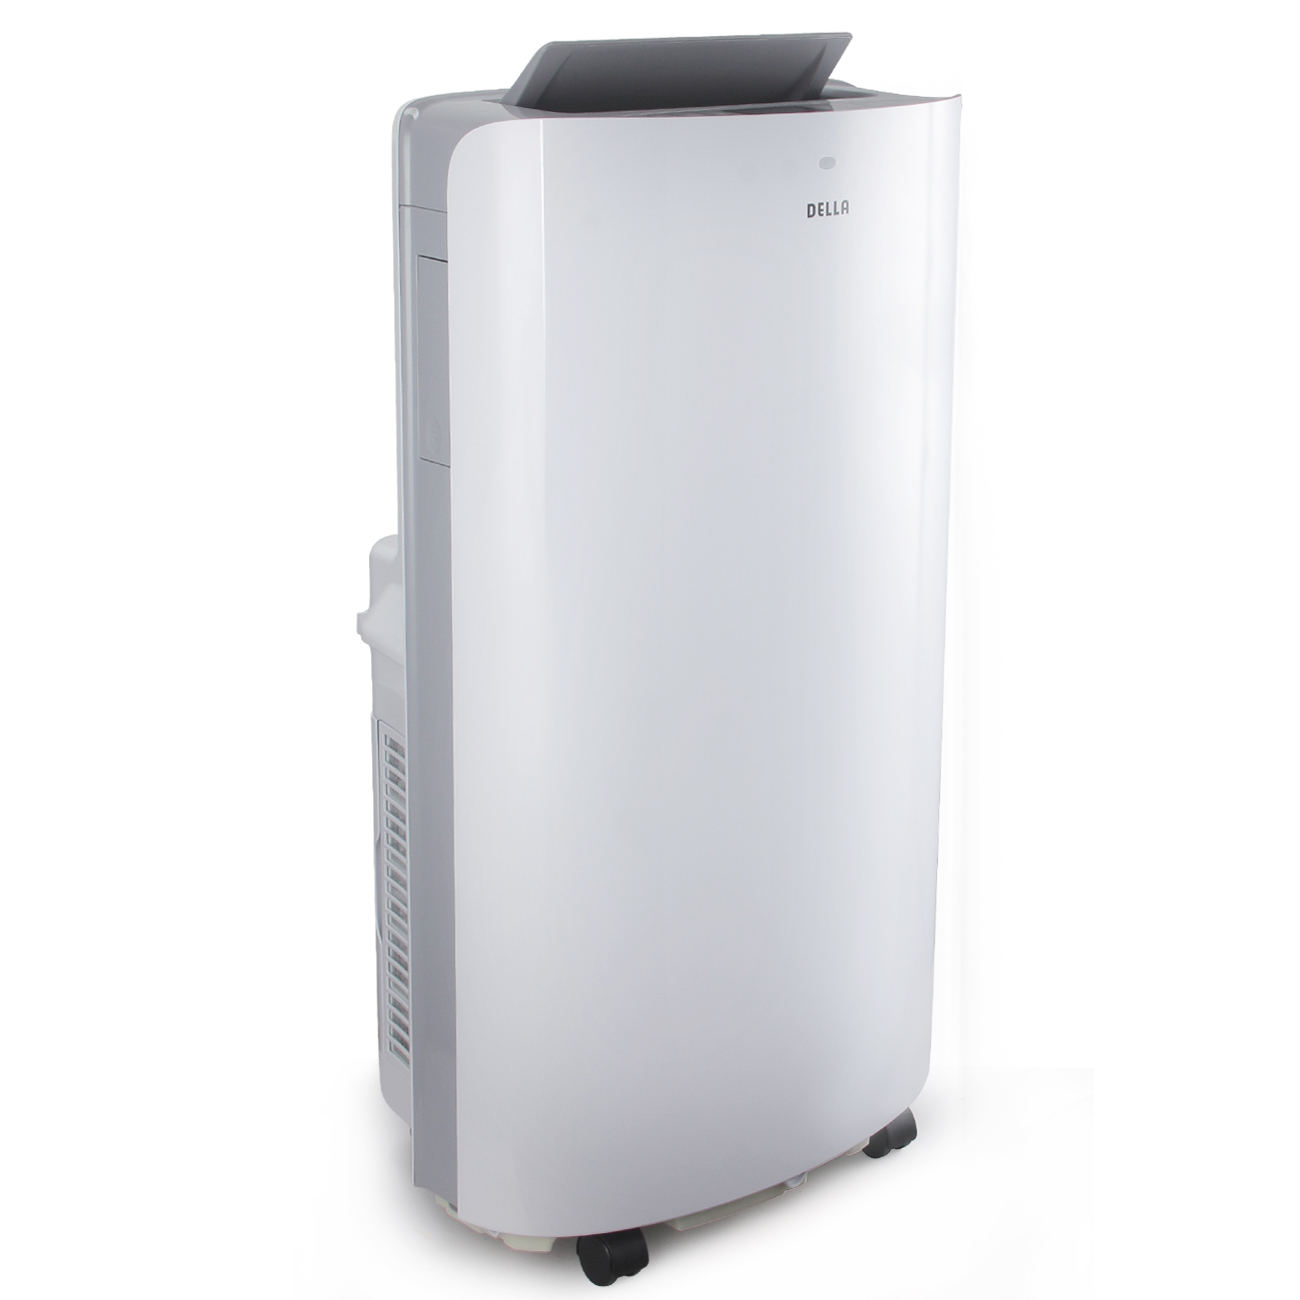 #5F656C 14 000 BTU Portable Air Conditioner Cooling & Heating W  Brand New 12151 Heater Air Conditioner Portable images with 1300x1300 px on helpvideos.info - Air Conditioners, Air Coolers and more